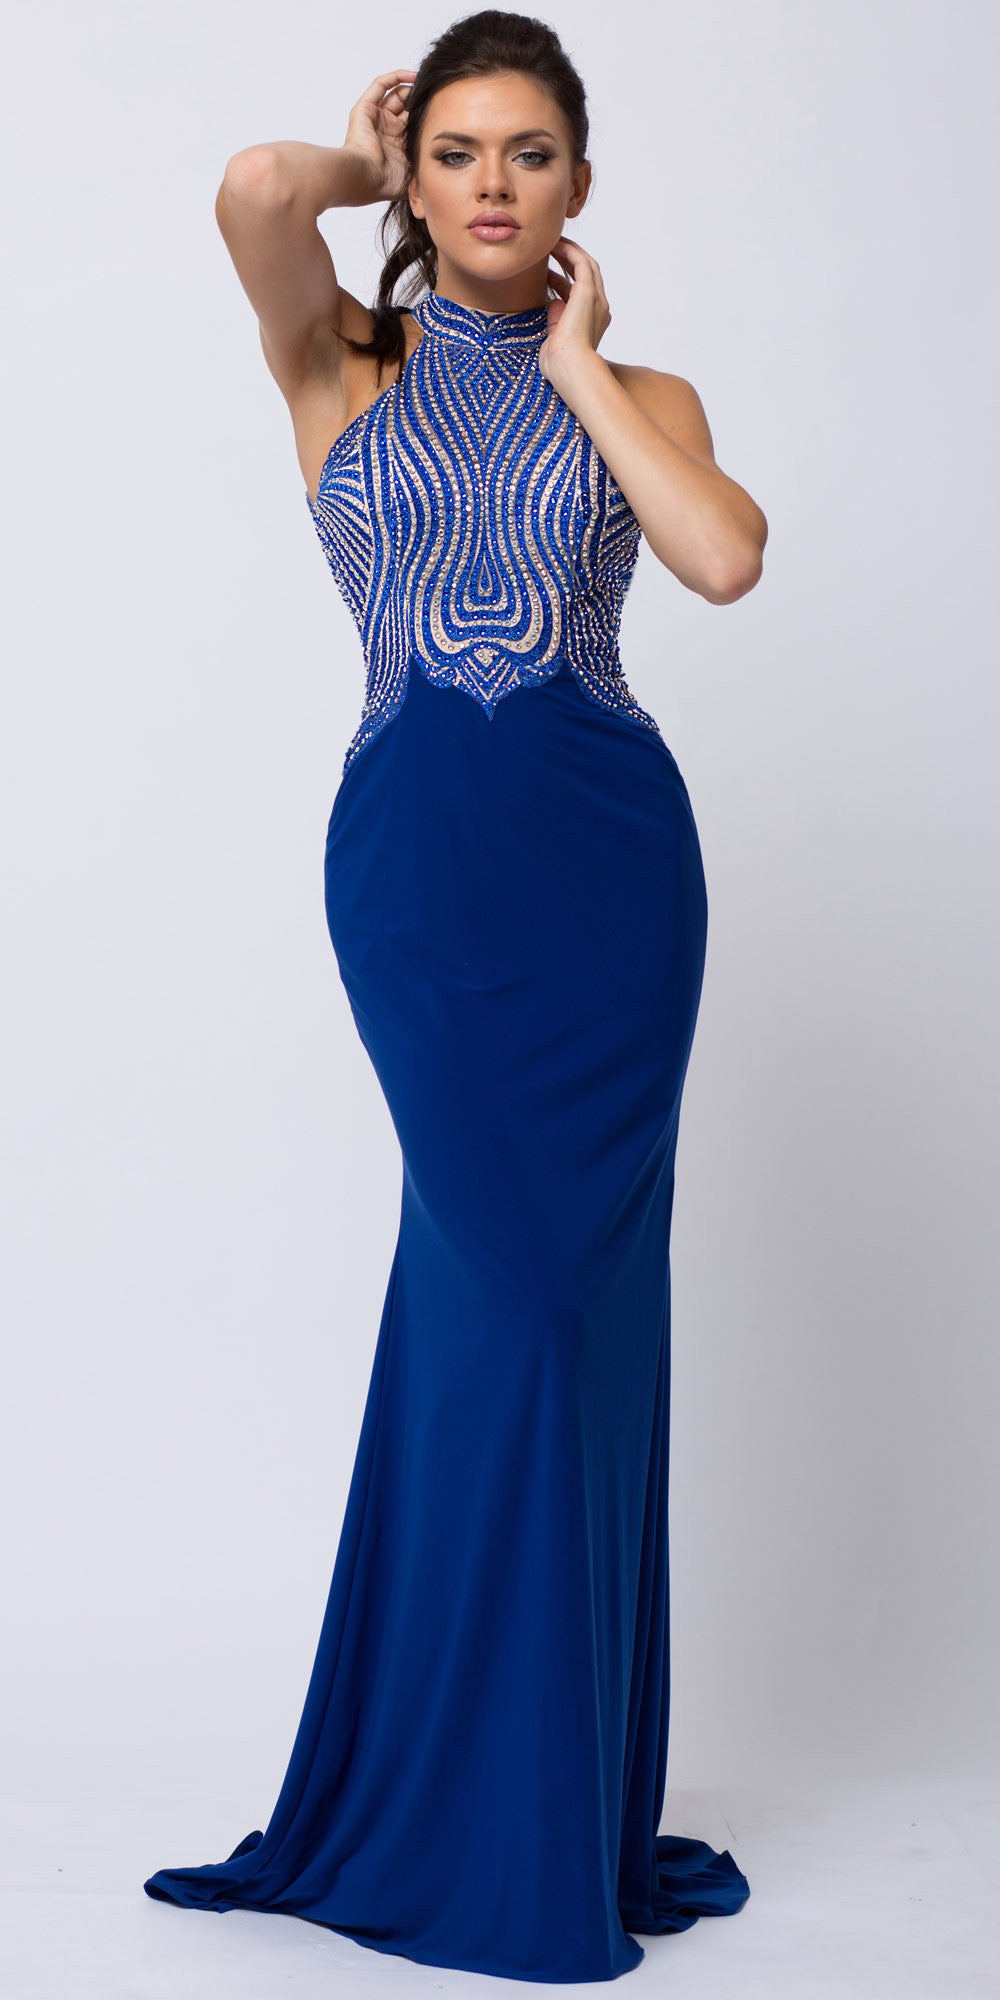 High Halter Neck Two Tone Bejeweled Top Long Prom Dress Heather